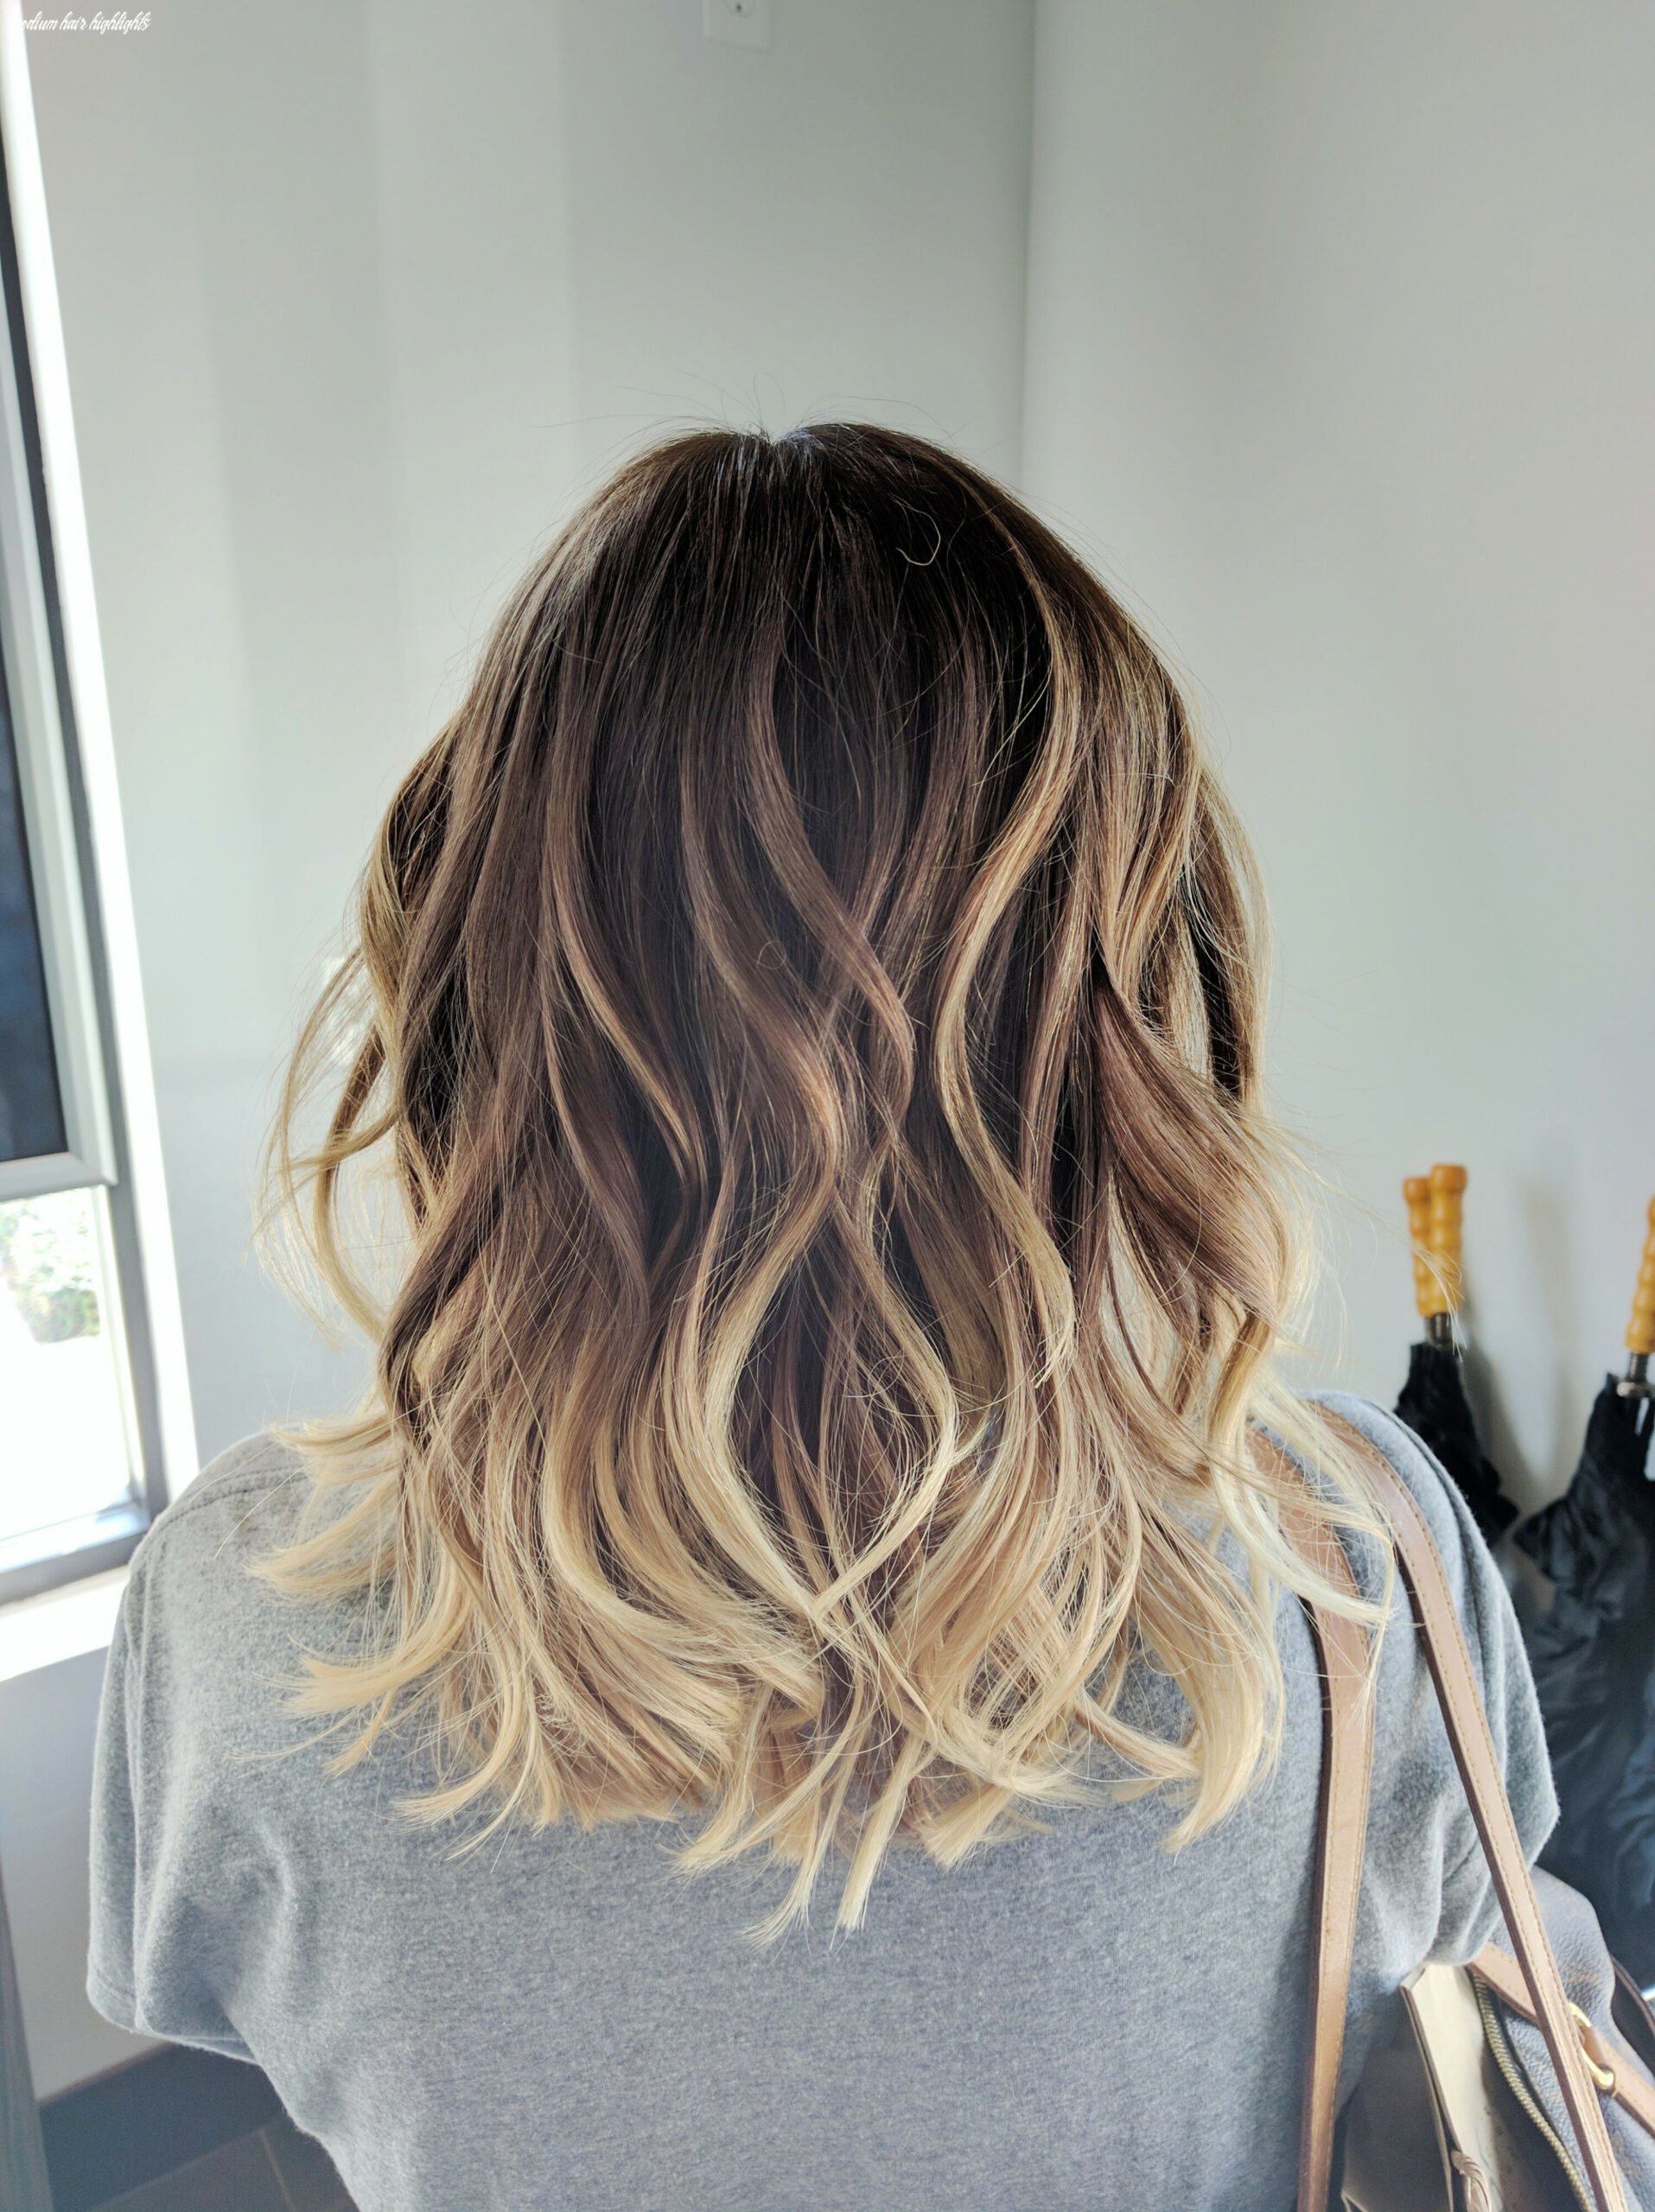 Popular medium hairstyles for thick hair and how to manage them